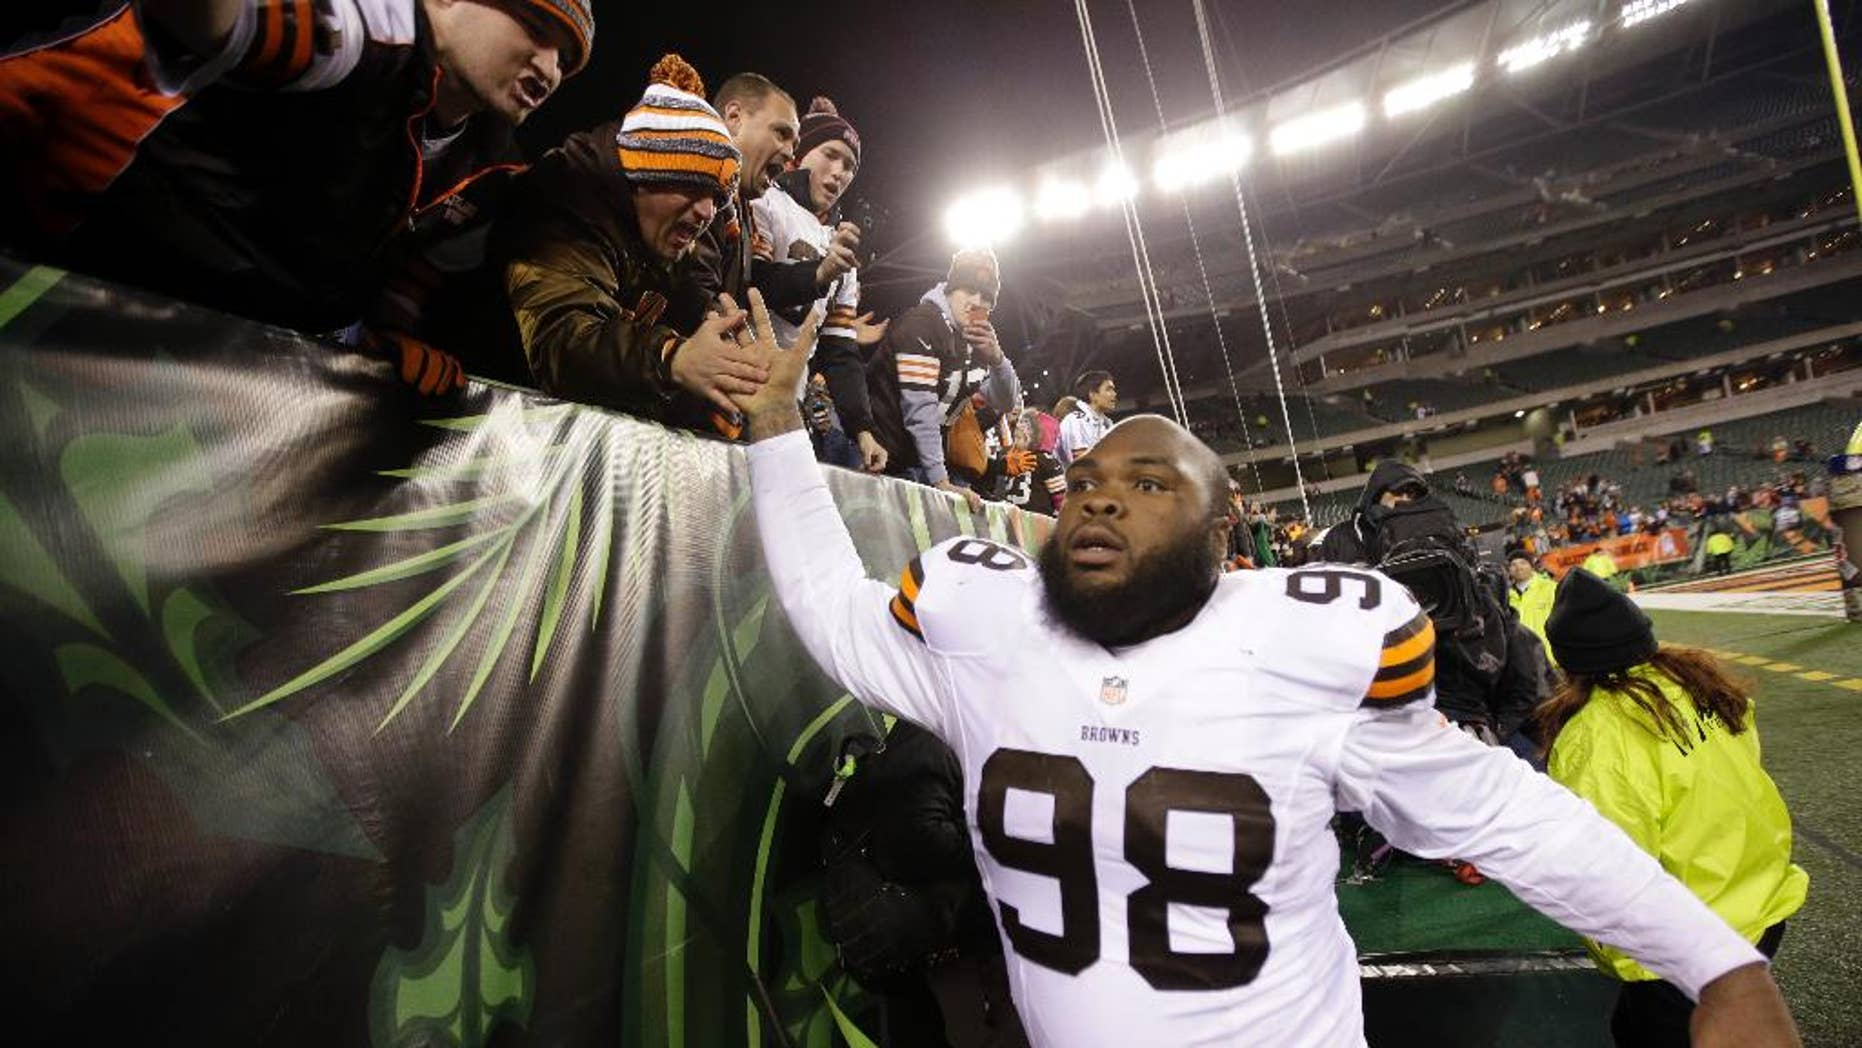 Cleveland Browns defensive end Phillip Taylor (98) celebrates after the Browns defeated the Cincinnati Bengals 24-3 in an NFL football game Thursday, Nov. 6, 2014, in Cincinnati. (AP Photo/AJ Mast)